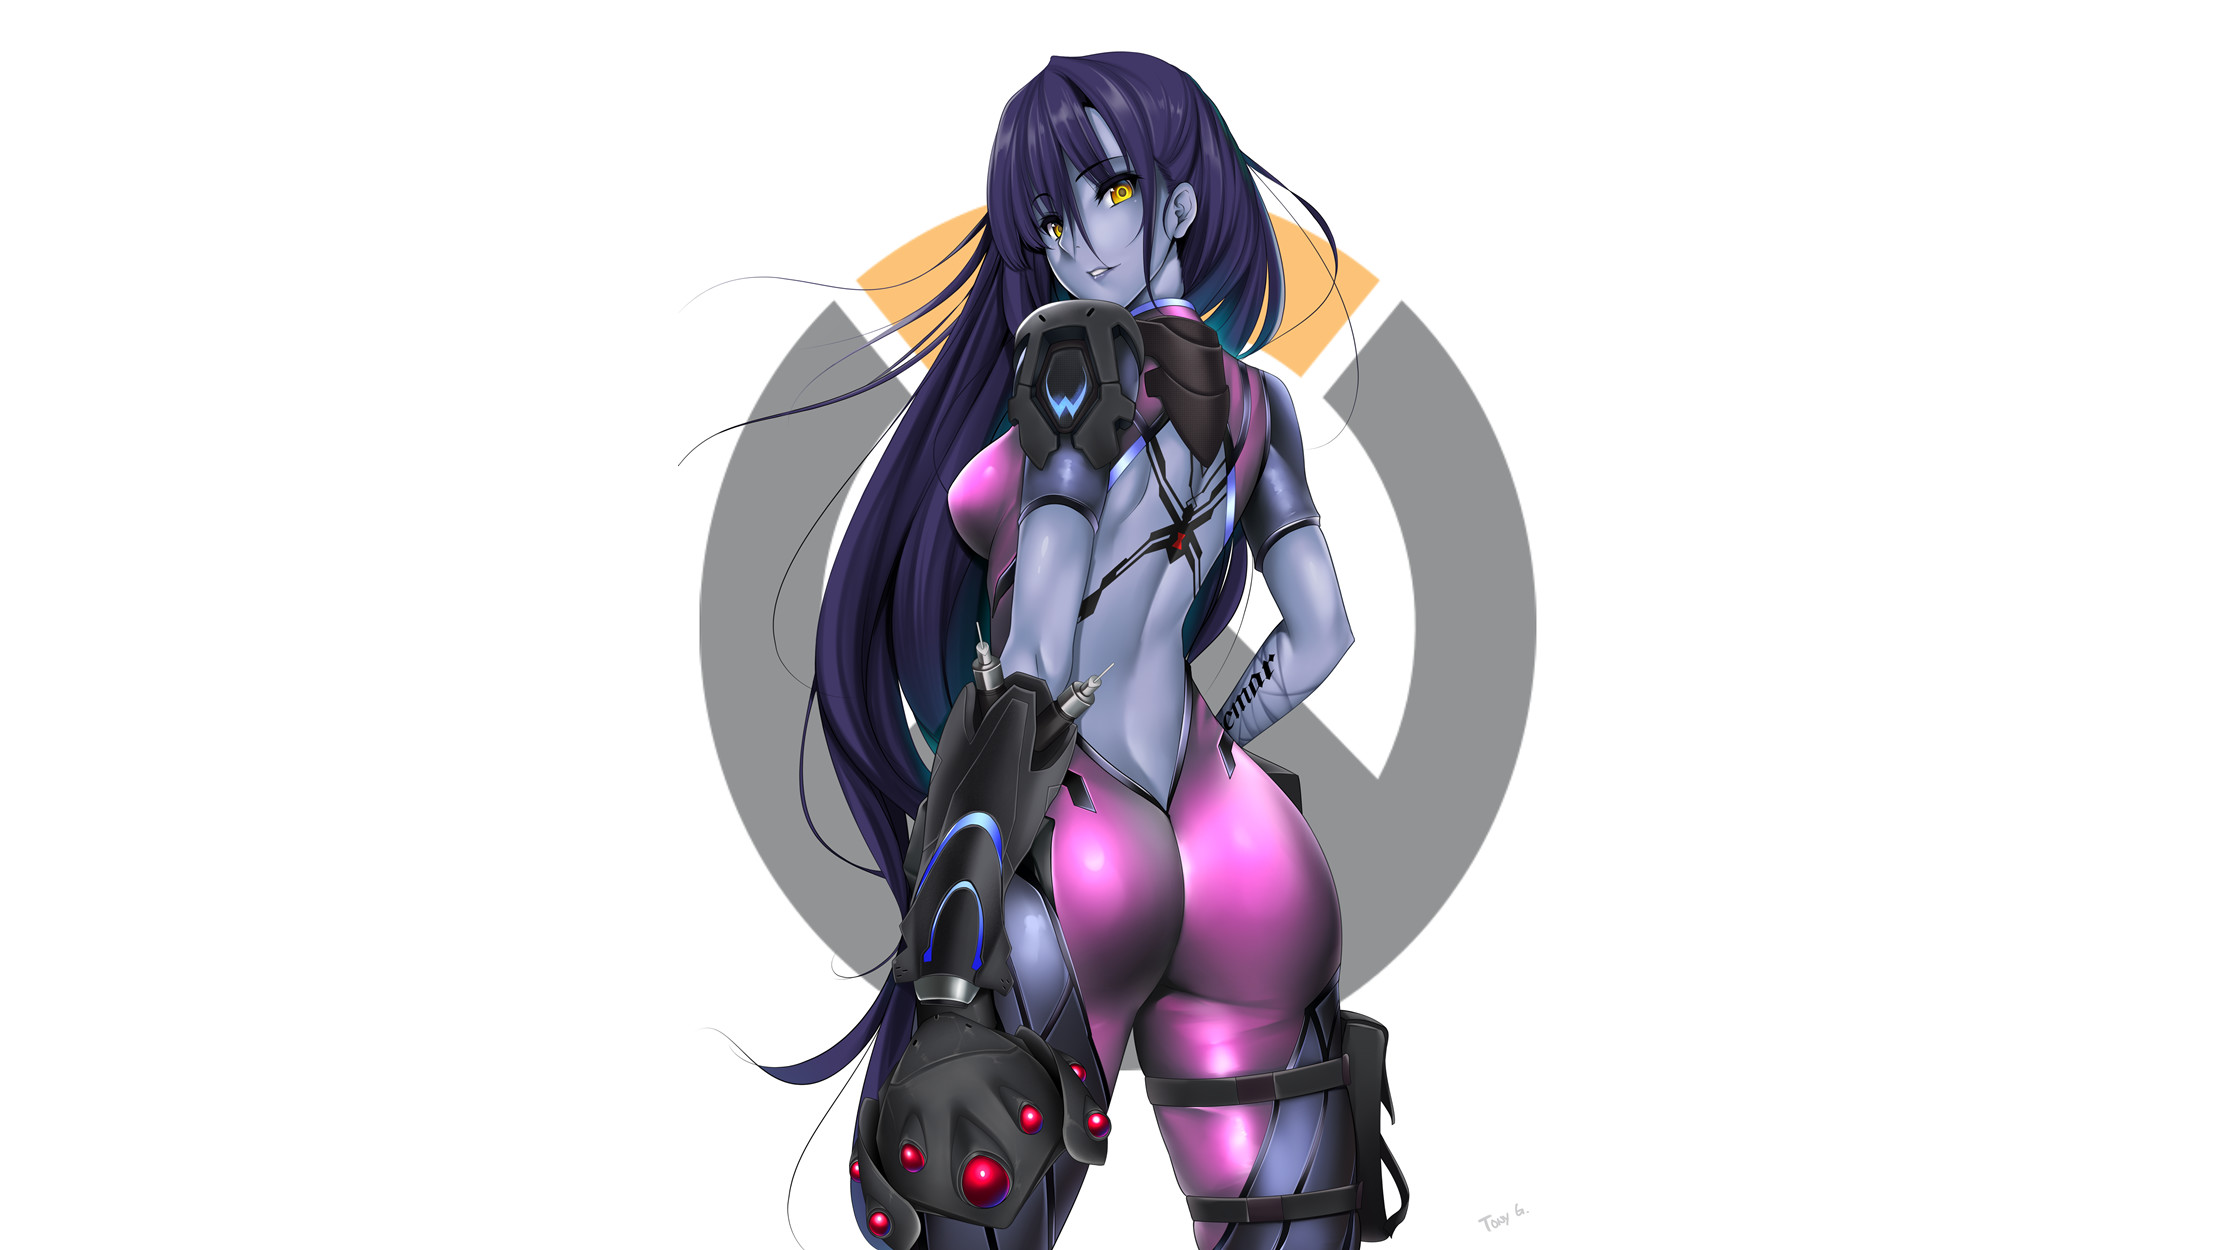 2232x1250 Video Game - Overwatch Widowmaker (Overwatch) Long Hair Purple Hair Yellow  Eyes Wallpaper